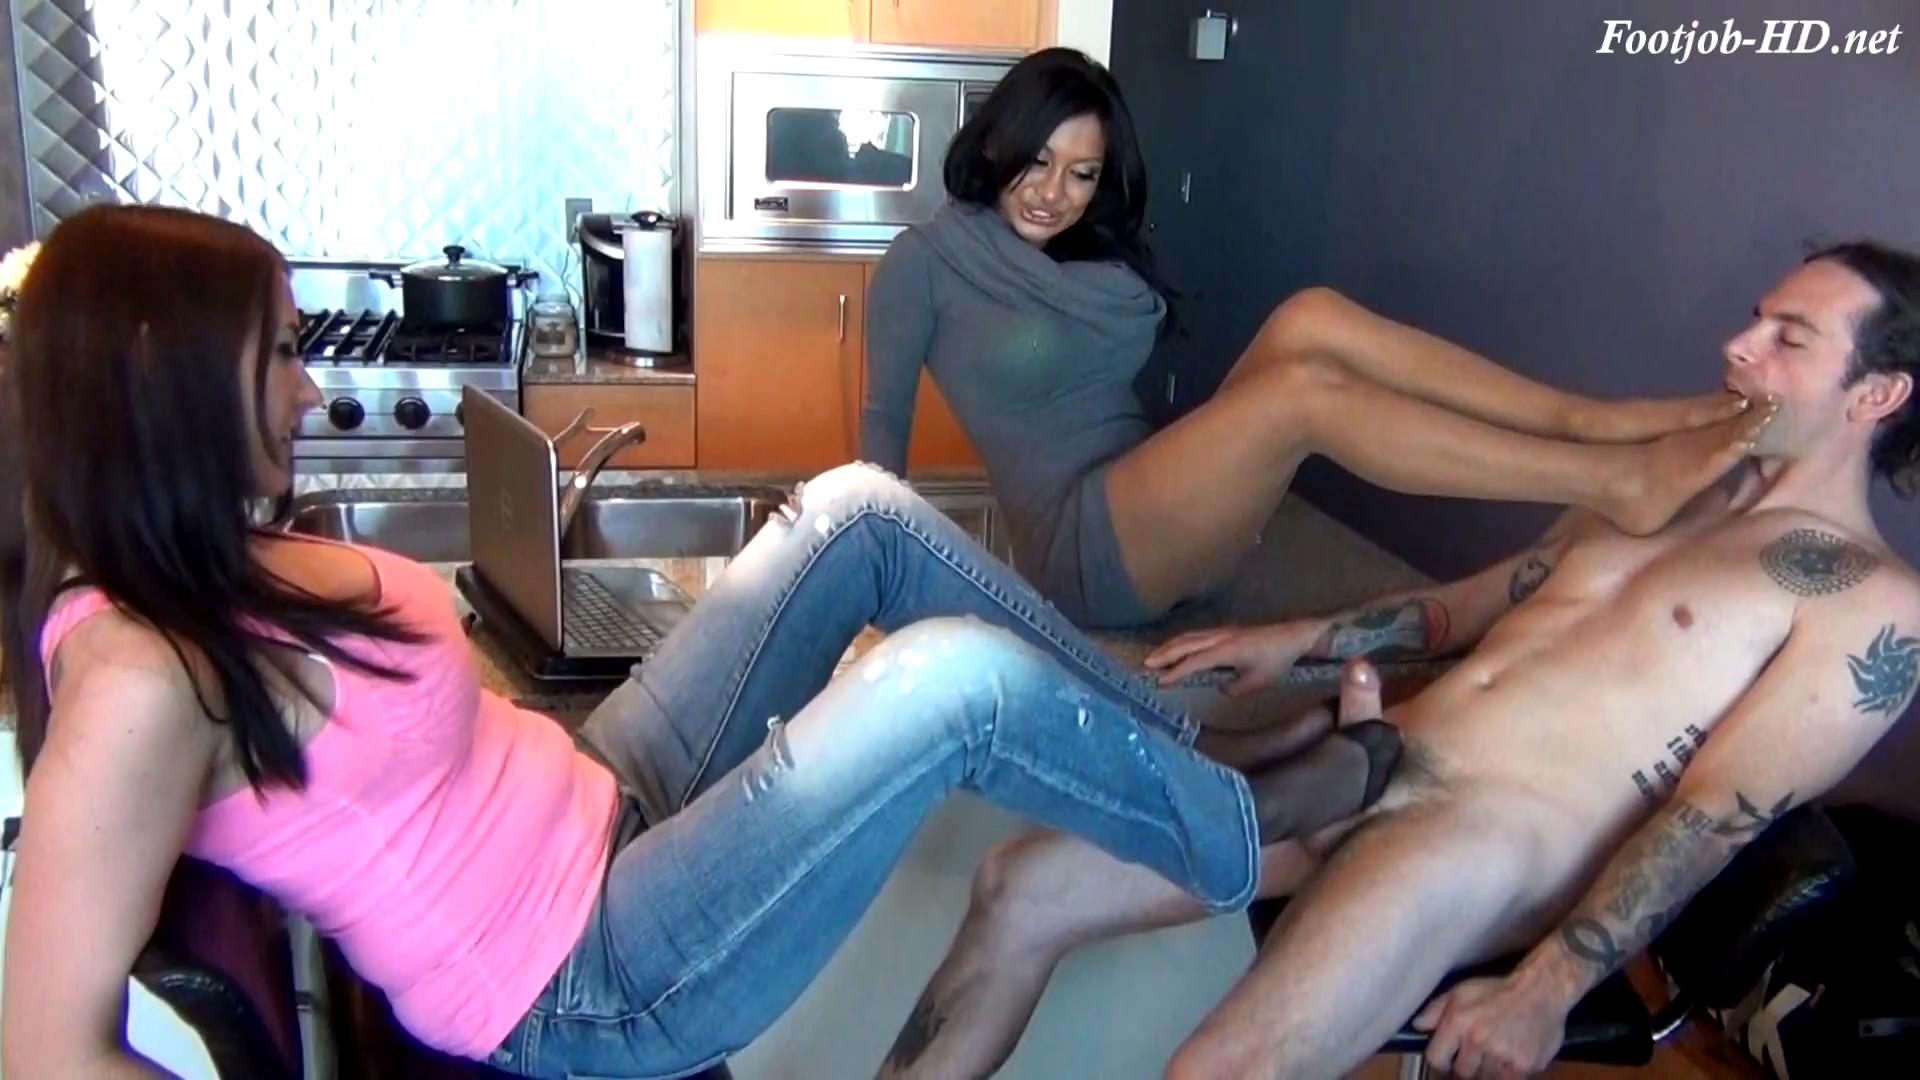 Nanny Shows Sister The Cure For Brothers ADD With Footjob – Bratty Babes Own You – Jasmine Shy, Alexis Grace